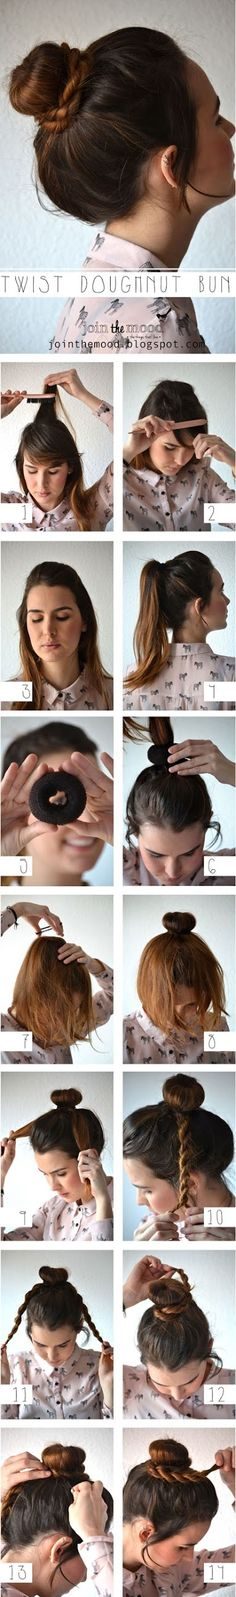 How To Make a Twist Doughnut Bun.